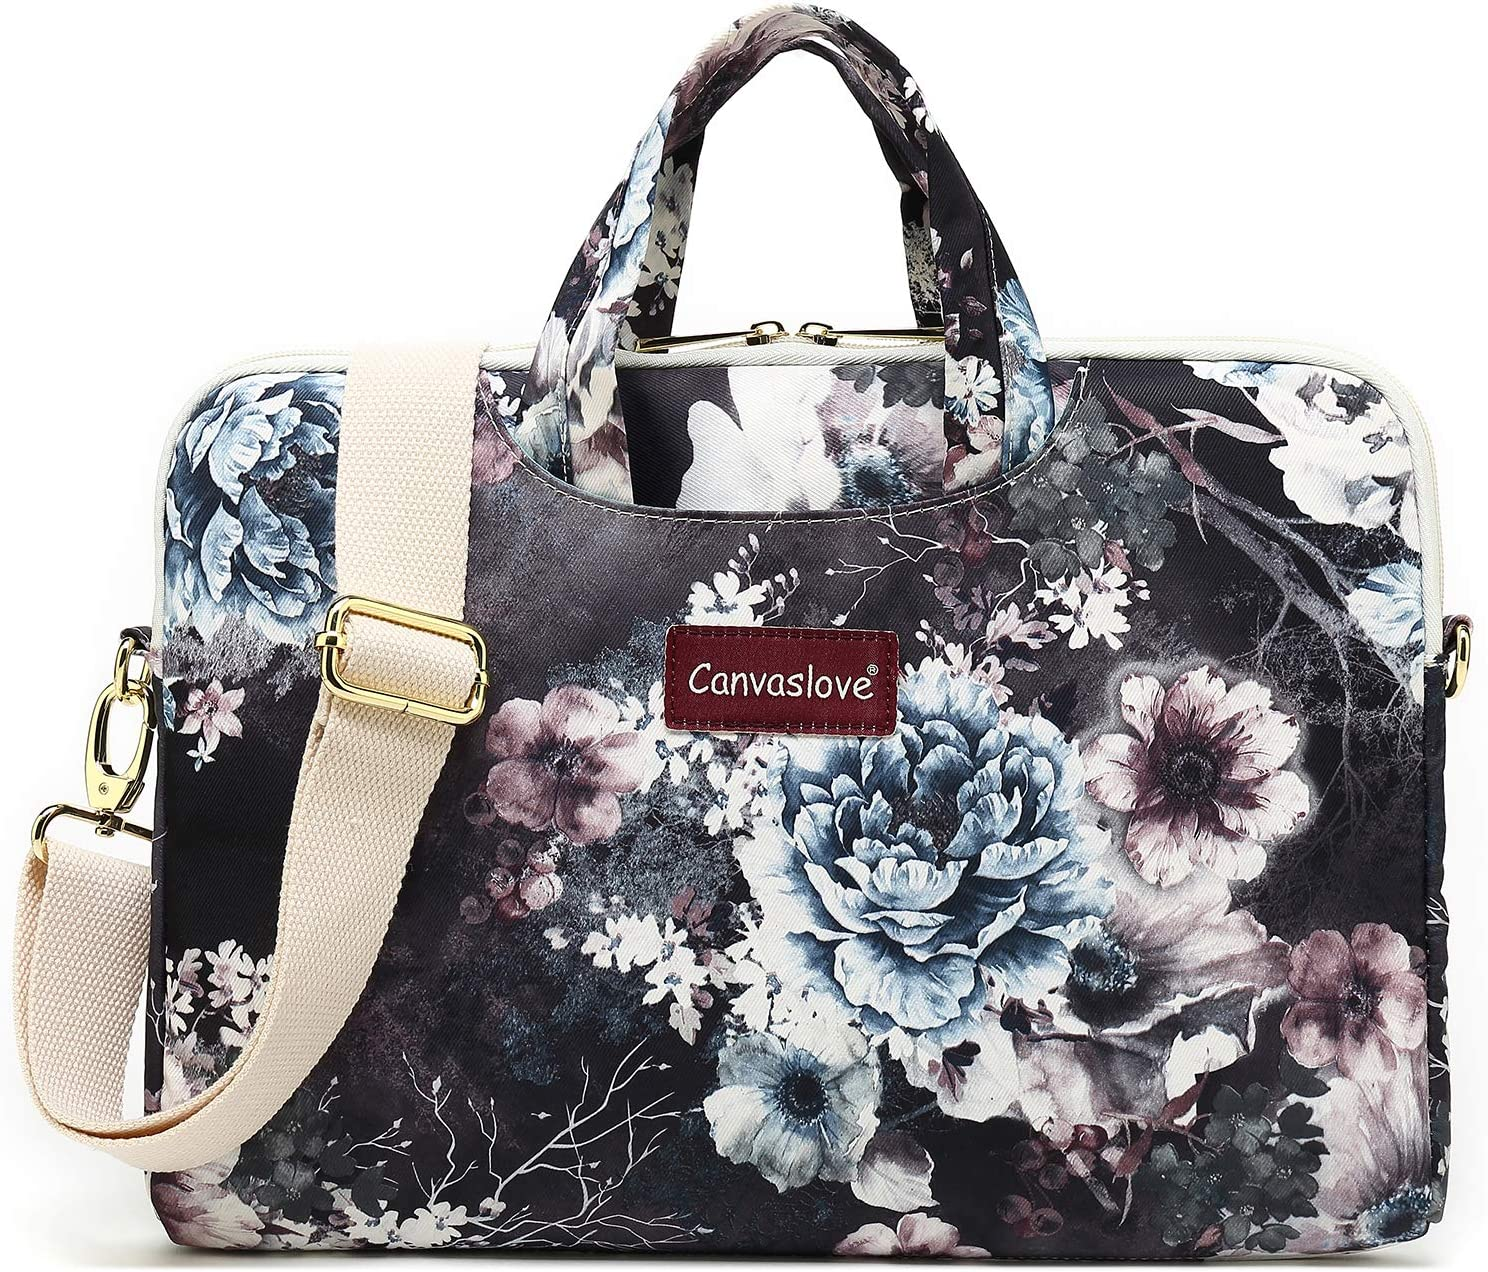 Canvaslove Small Chrysanthemum Water Resistant Laptop Shoulder Messenger Bag Case for MacBook Pro 16 inch,15 inch Surface Laptop 3,Surface Book 2 and 14 inch,15 Inch,15.6 Inch Laptop